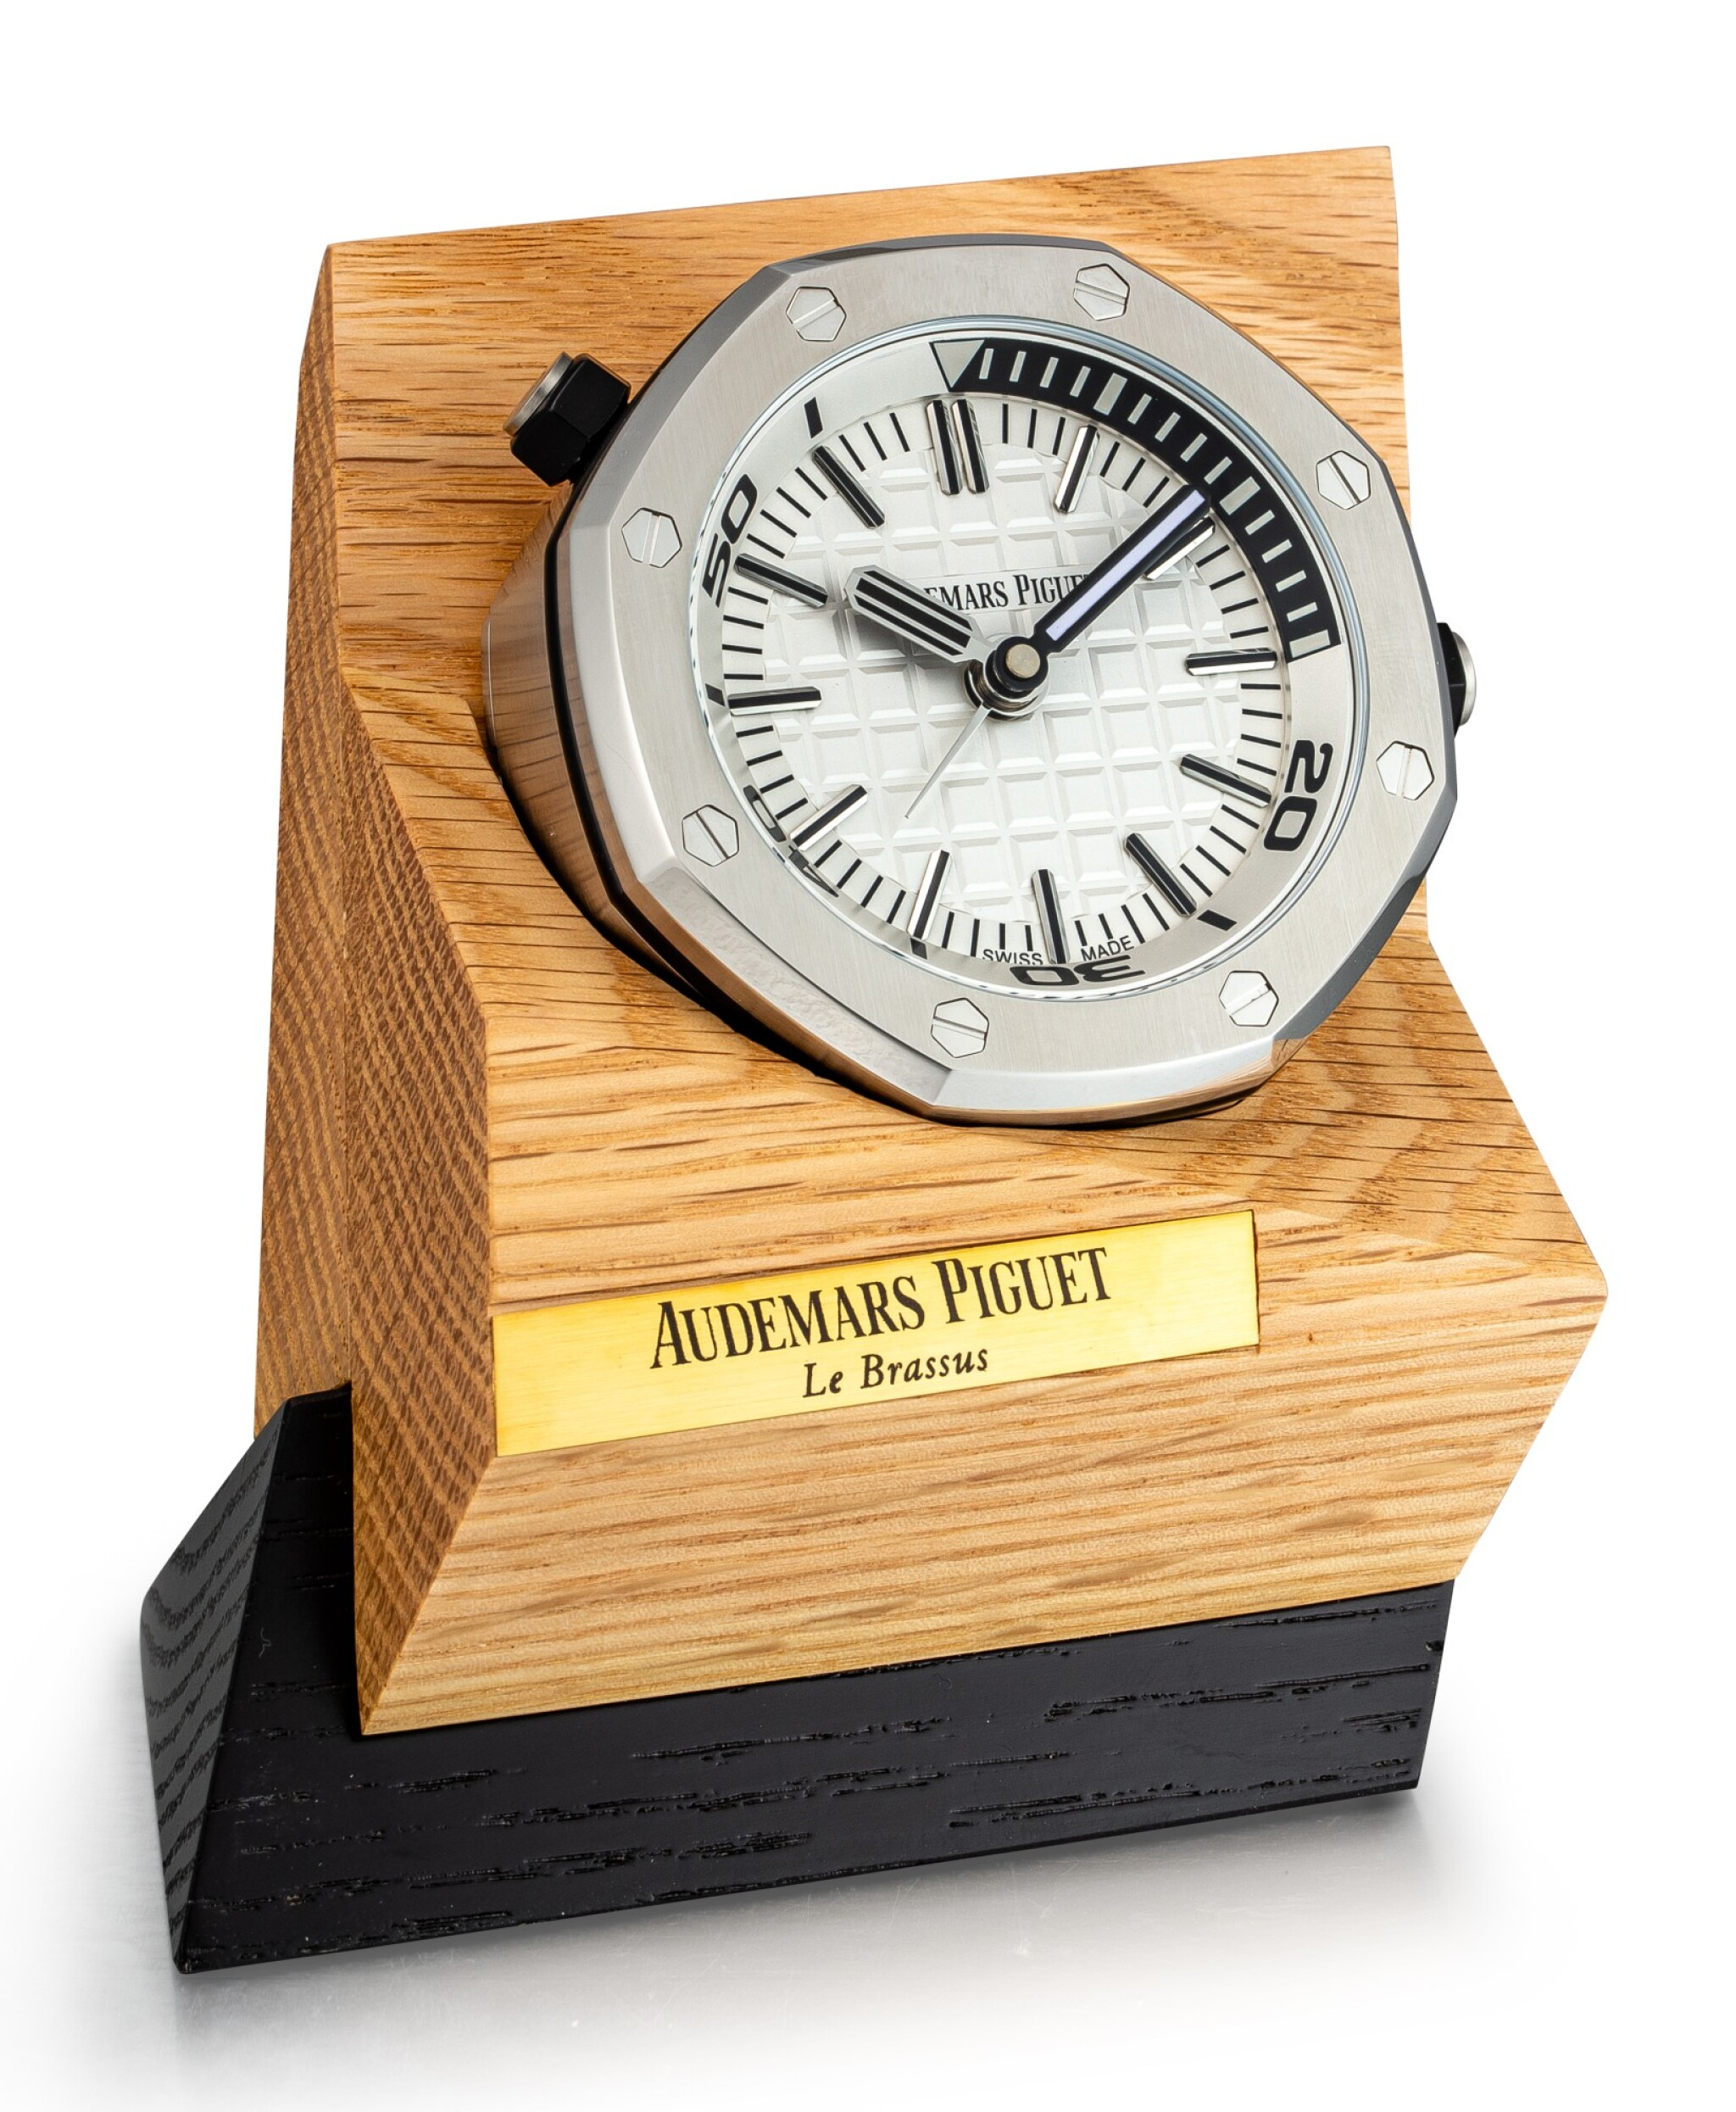 View full screen - View 1 of Lot 108. AUDEMARS PIGUET   ROYAL OAK A STAINLESS STEEL ALARM DESK CLOCK WITH WOODEN STAND, CIRCA 2016.